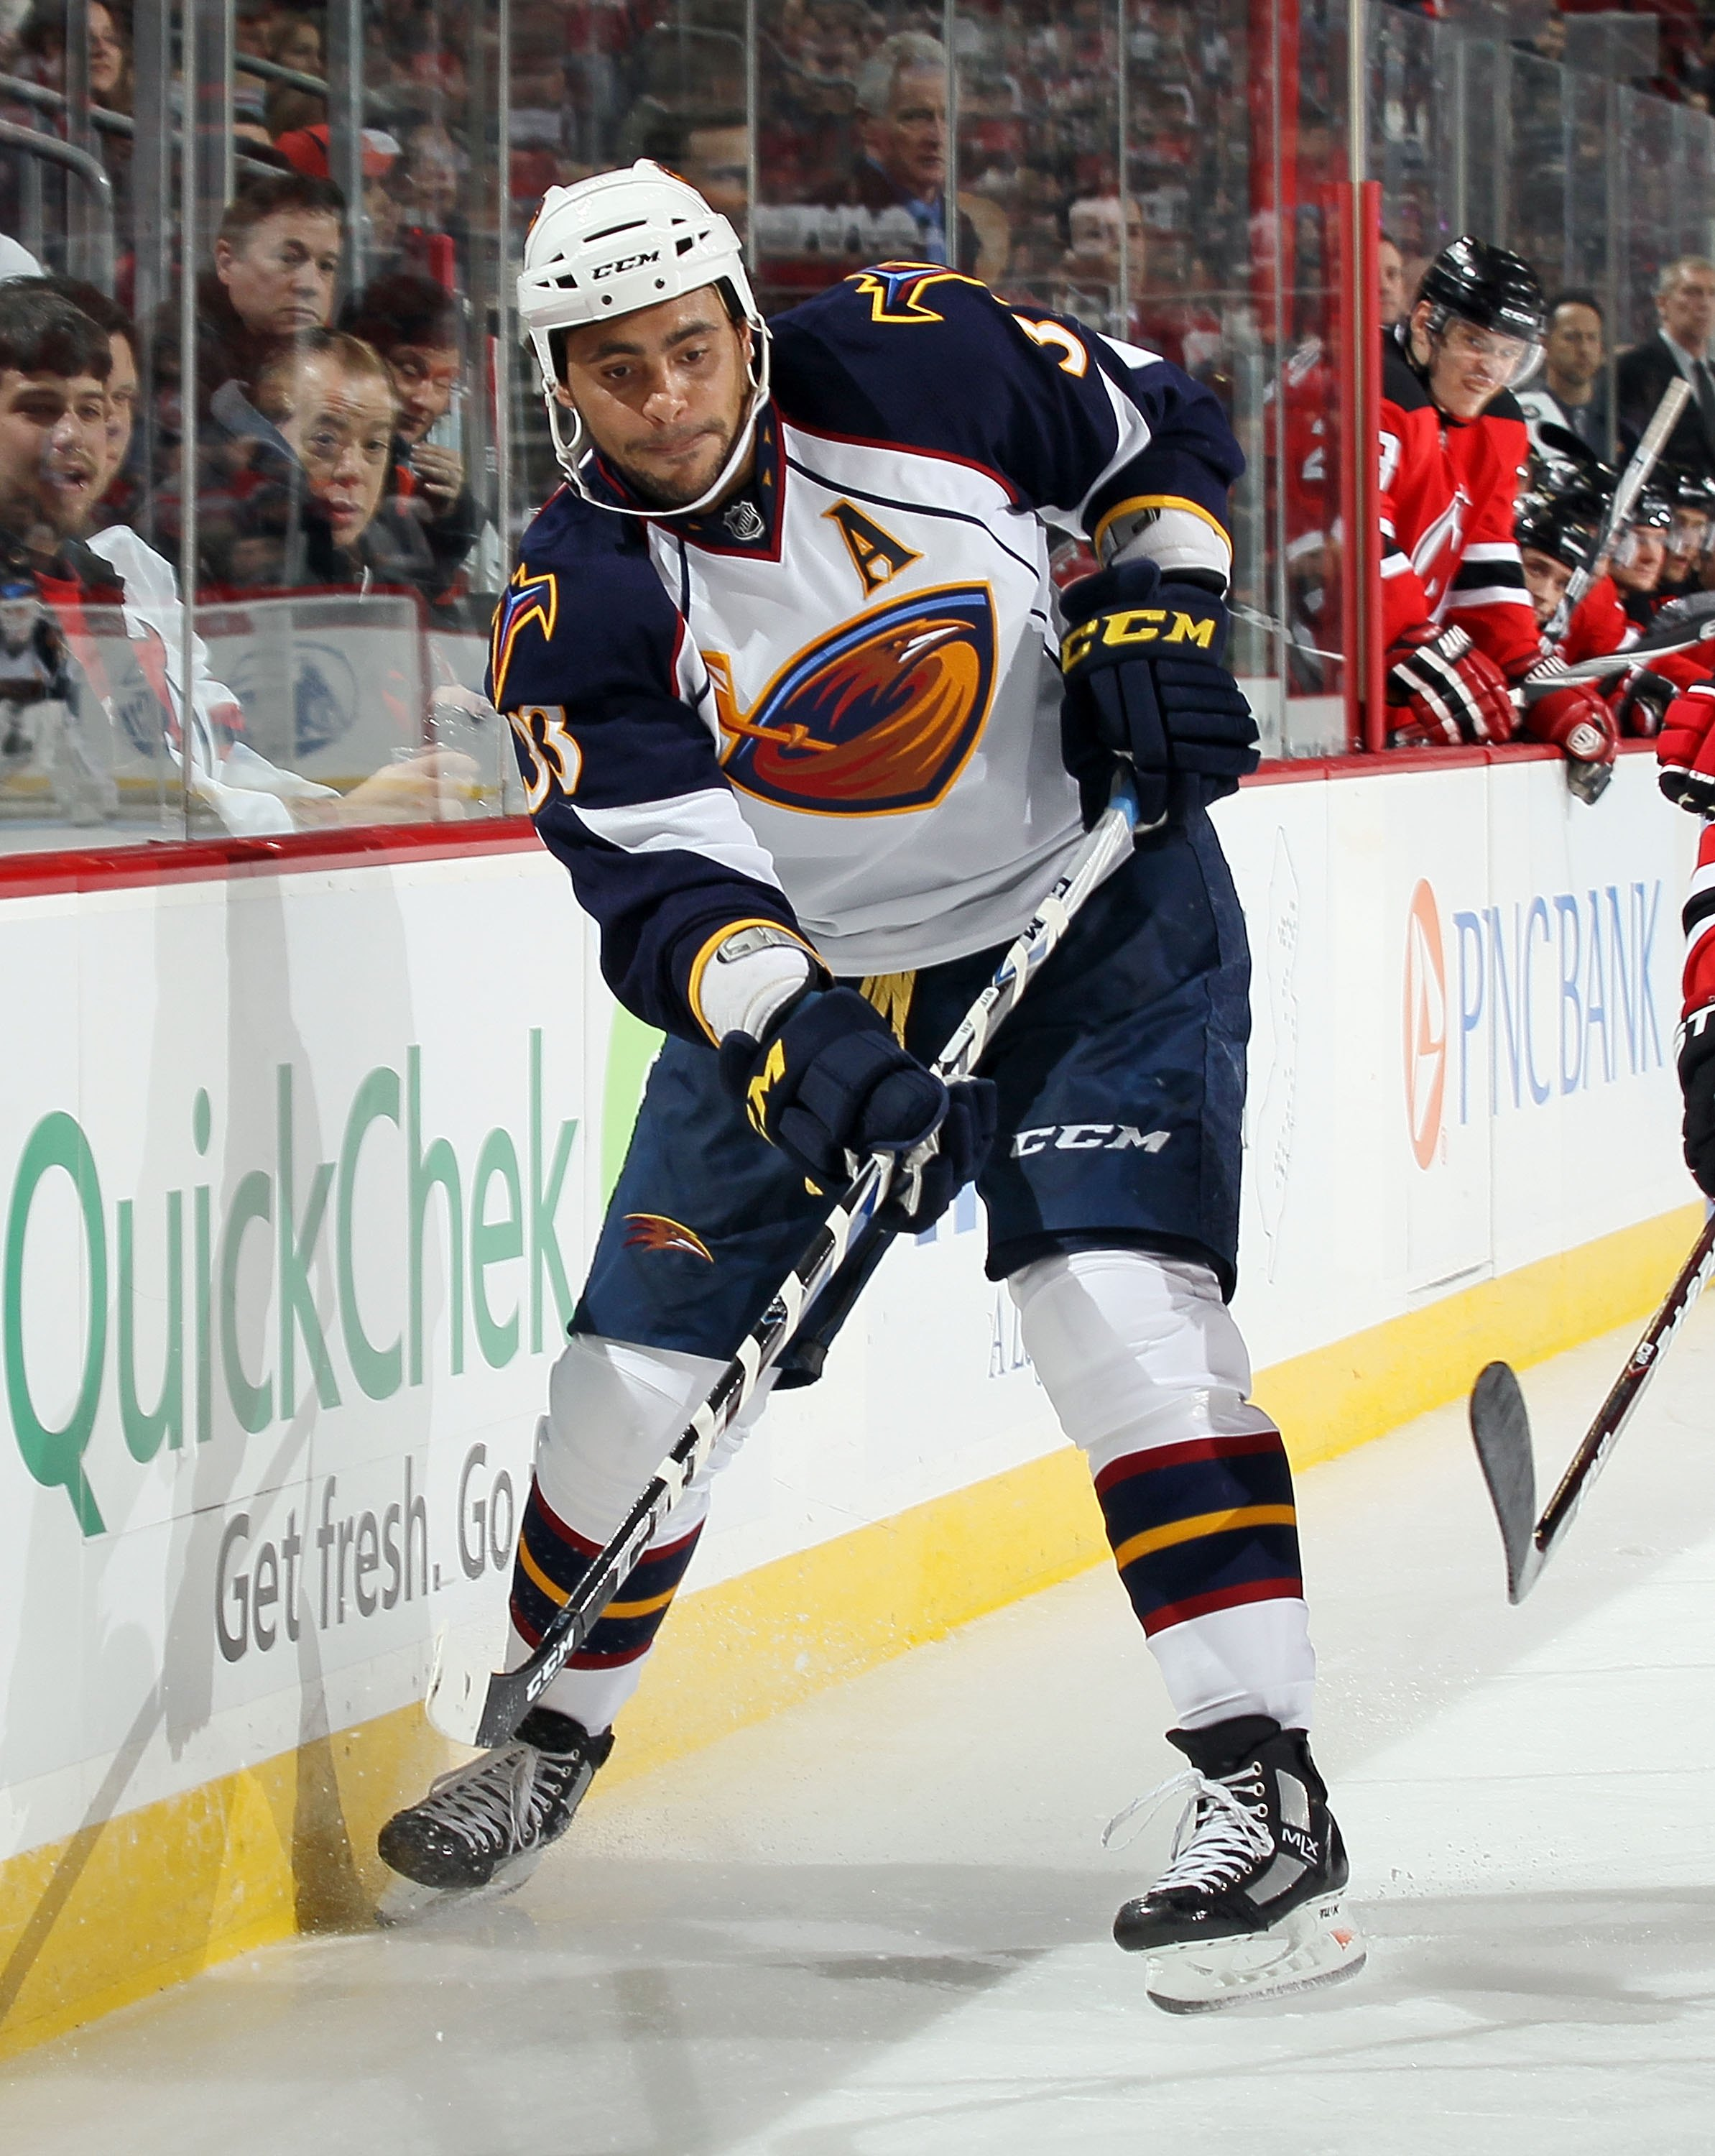 NEWARK, NJ - DECEMBER 31:  Dustin Byfuglien #33 of the Atlanta Thrashers skates against the New Jersey Devils at the Prudential Center on December 31, 2010 in Newark, New Jersey. The Devils defeated the Thrashers 3-1.  (Photo by Jim McIsaac/Getty Images)